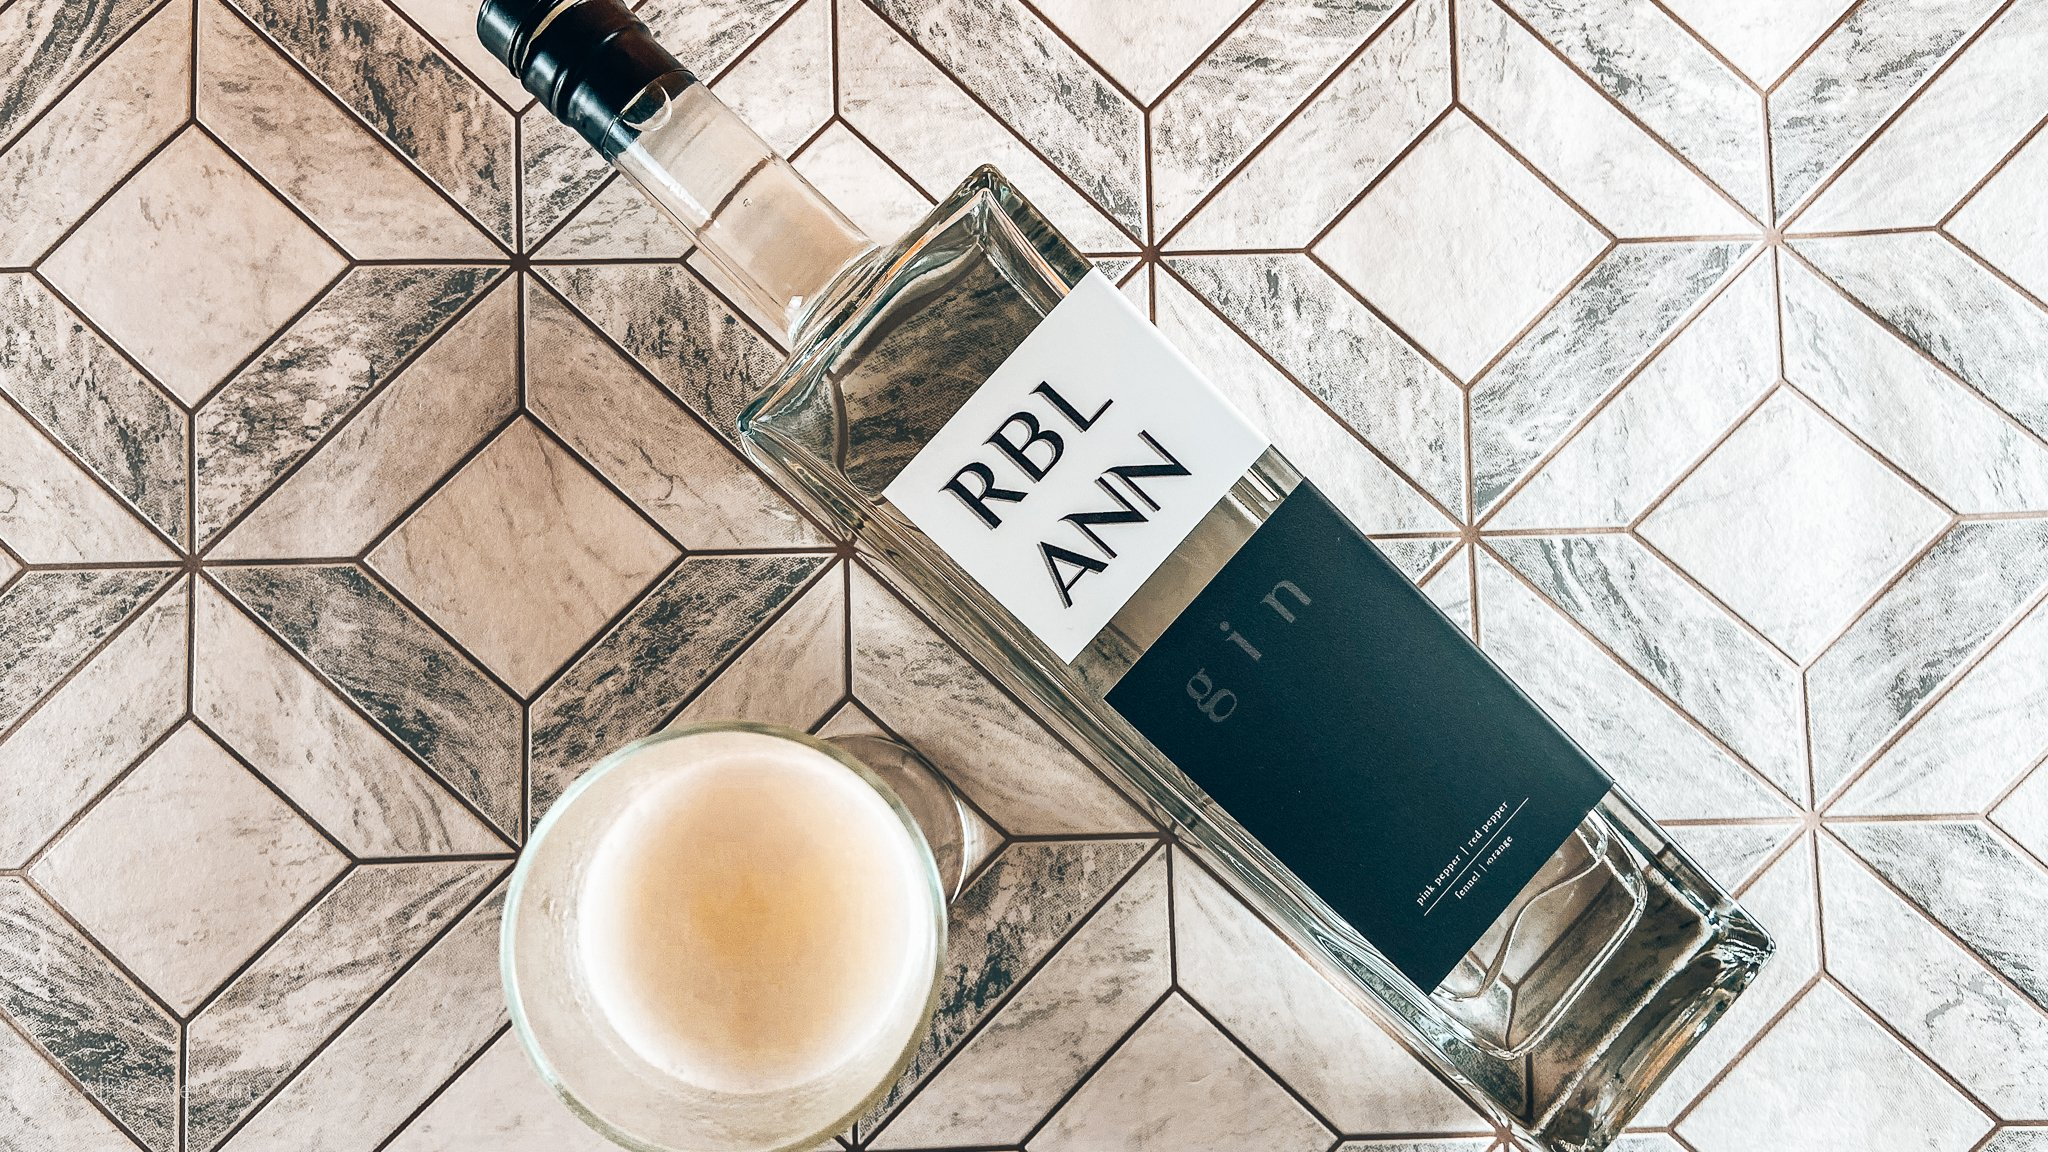 RBL Scroppino, Recept met RBL ANN Gin, Alles over gin.